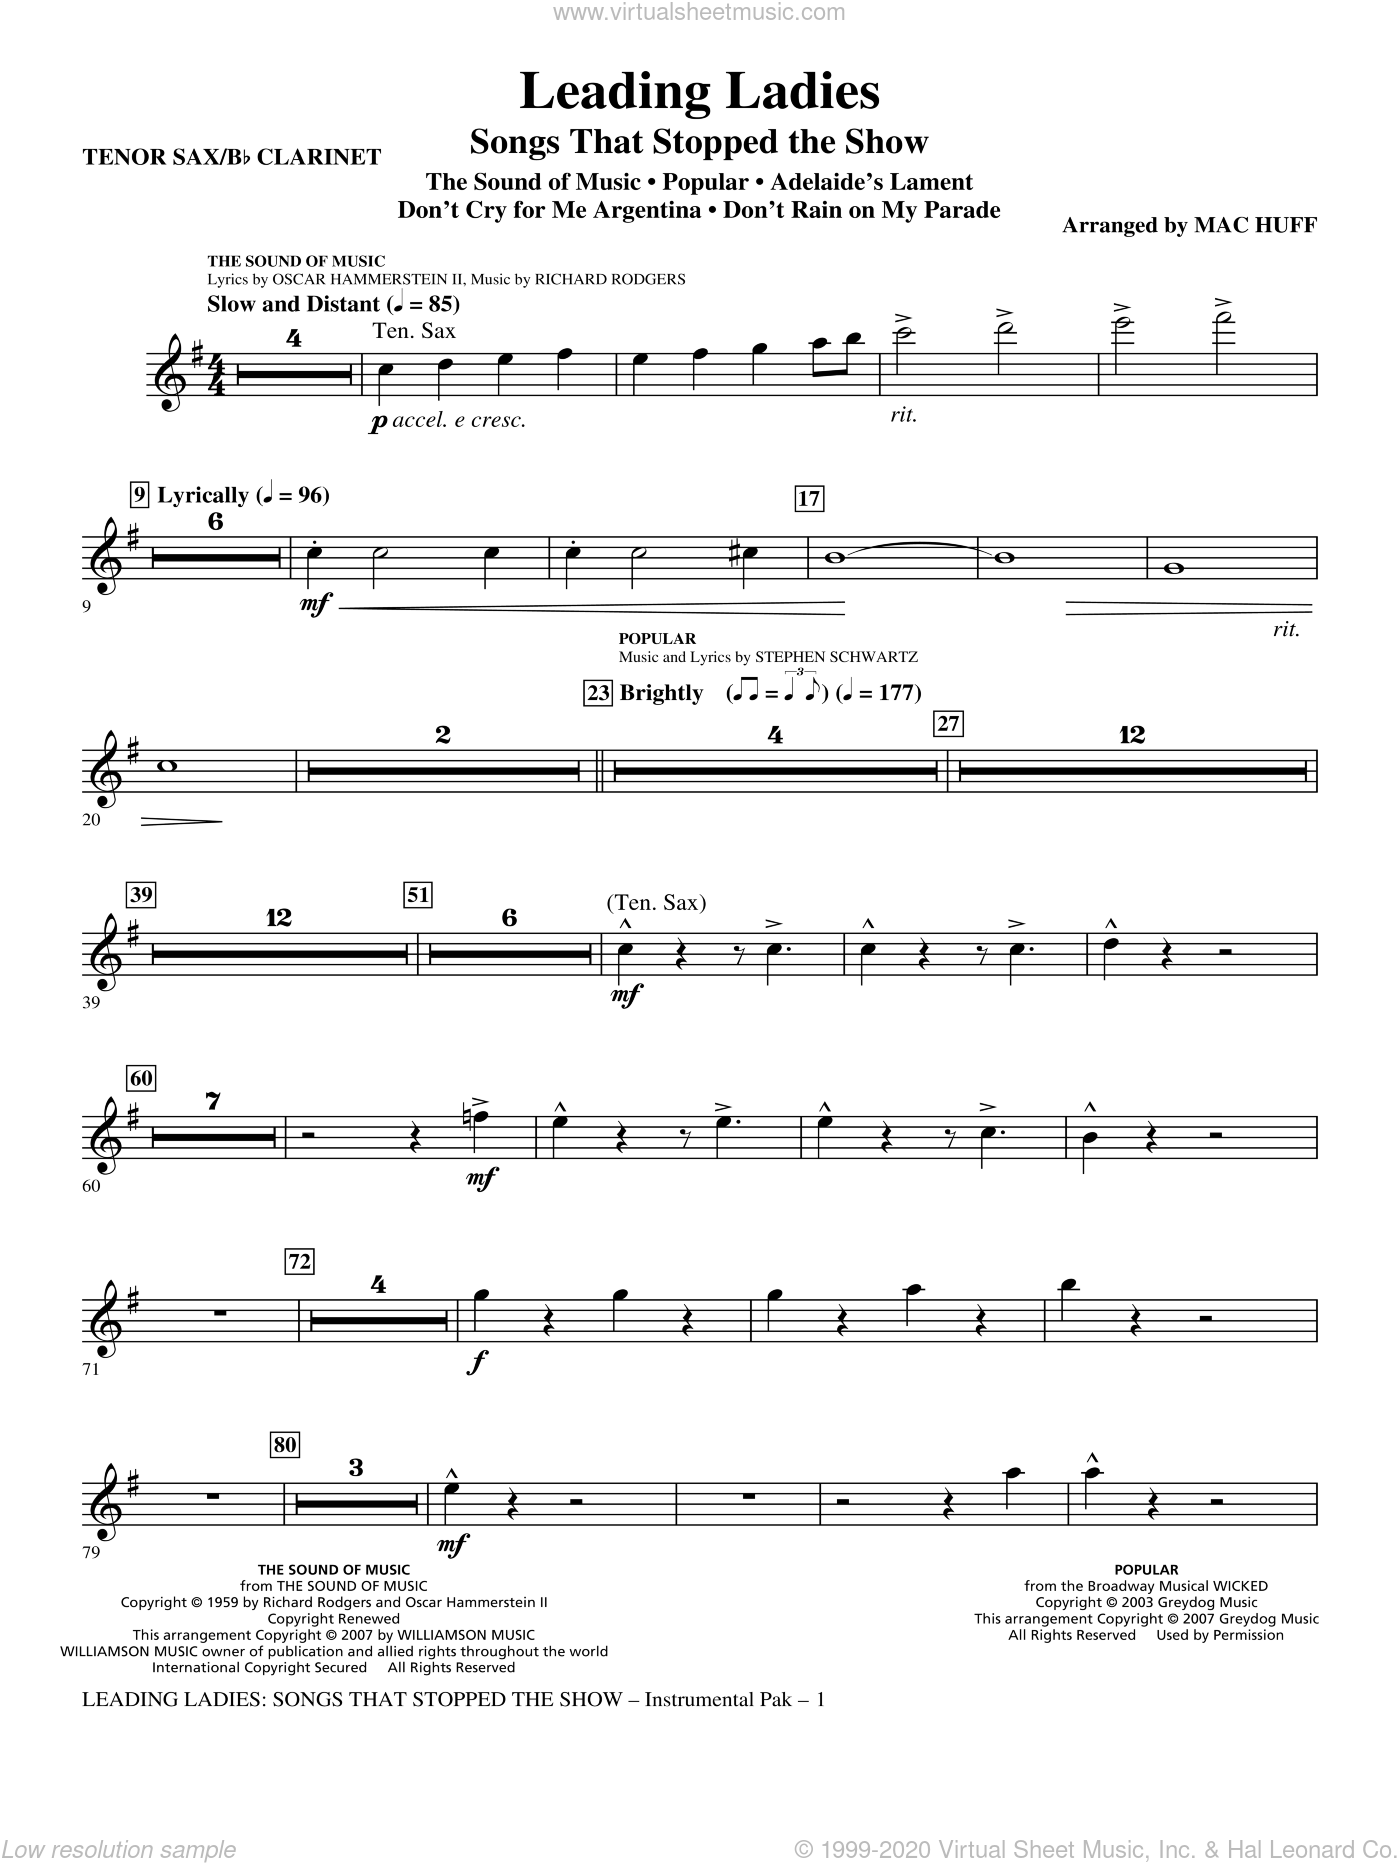 Leading Ladies: Songs That Stopped the Show sheet music for orchestra/band (tenor sax/clarinet) by Mac Huff, intermediate skill level